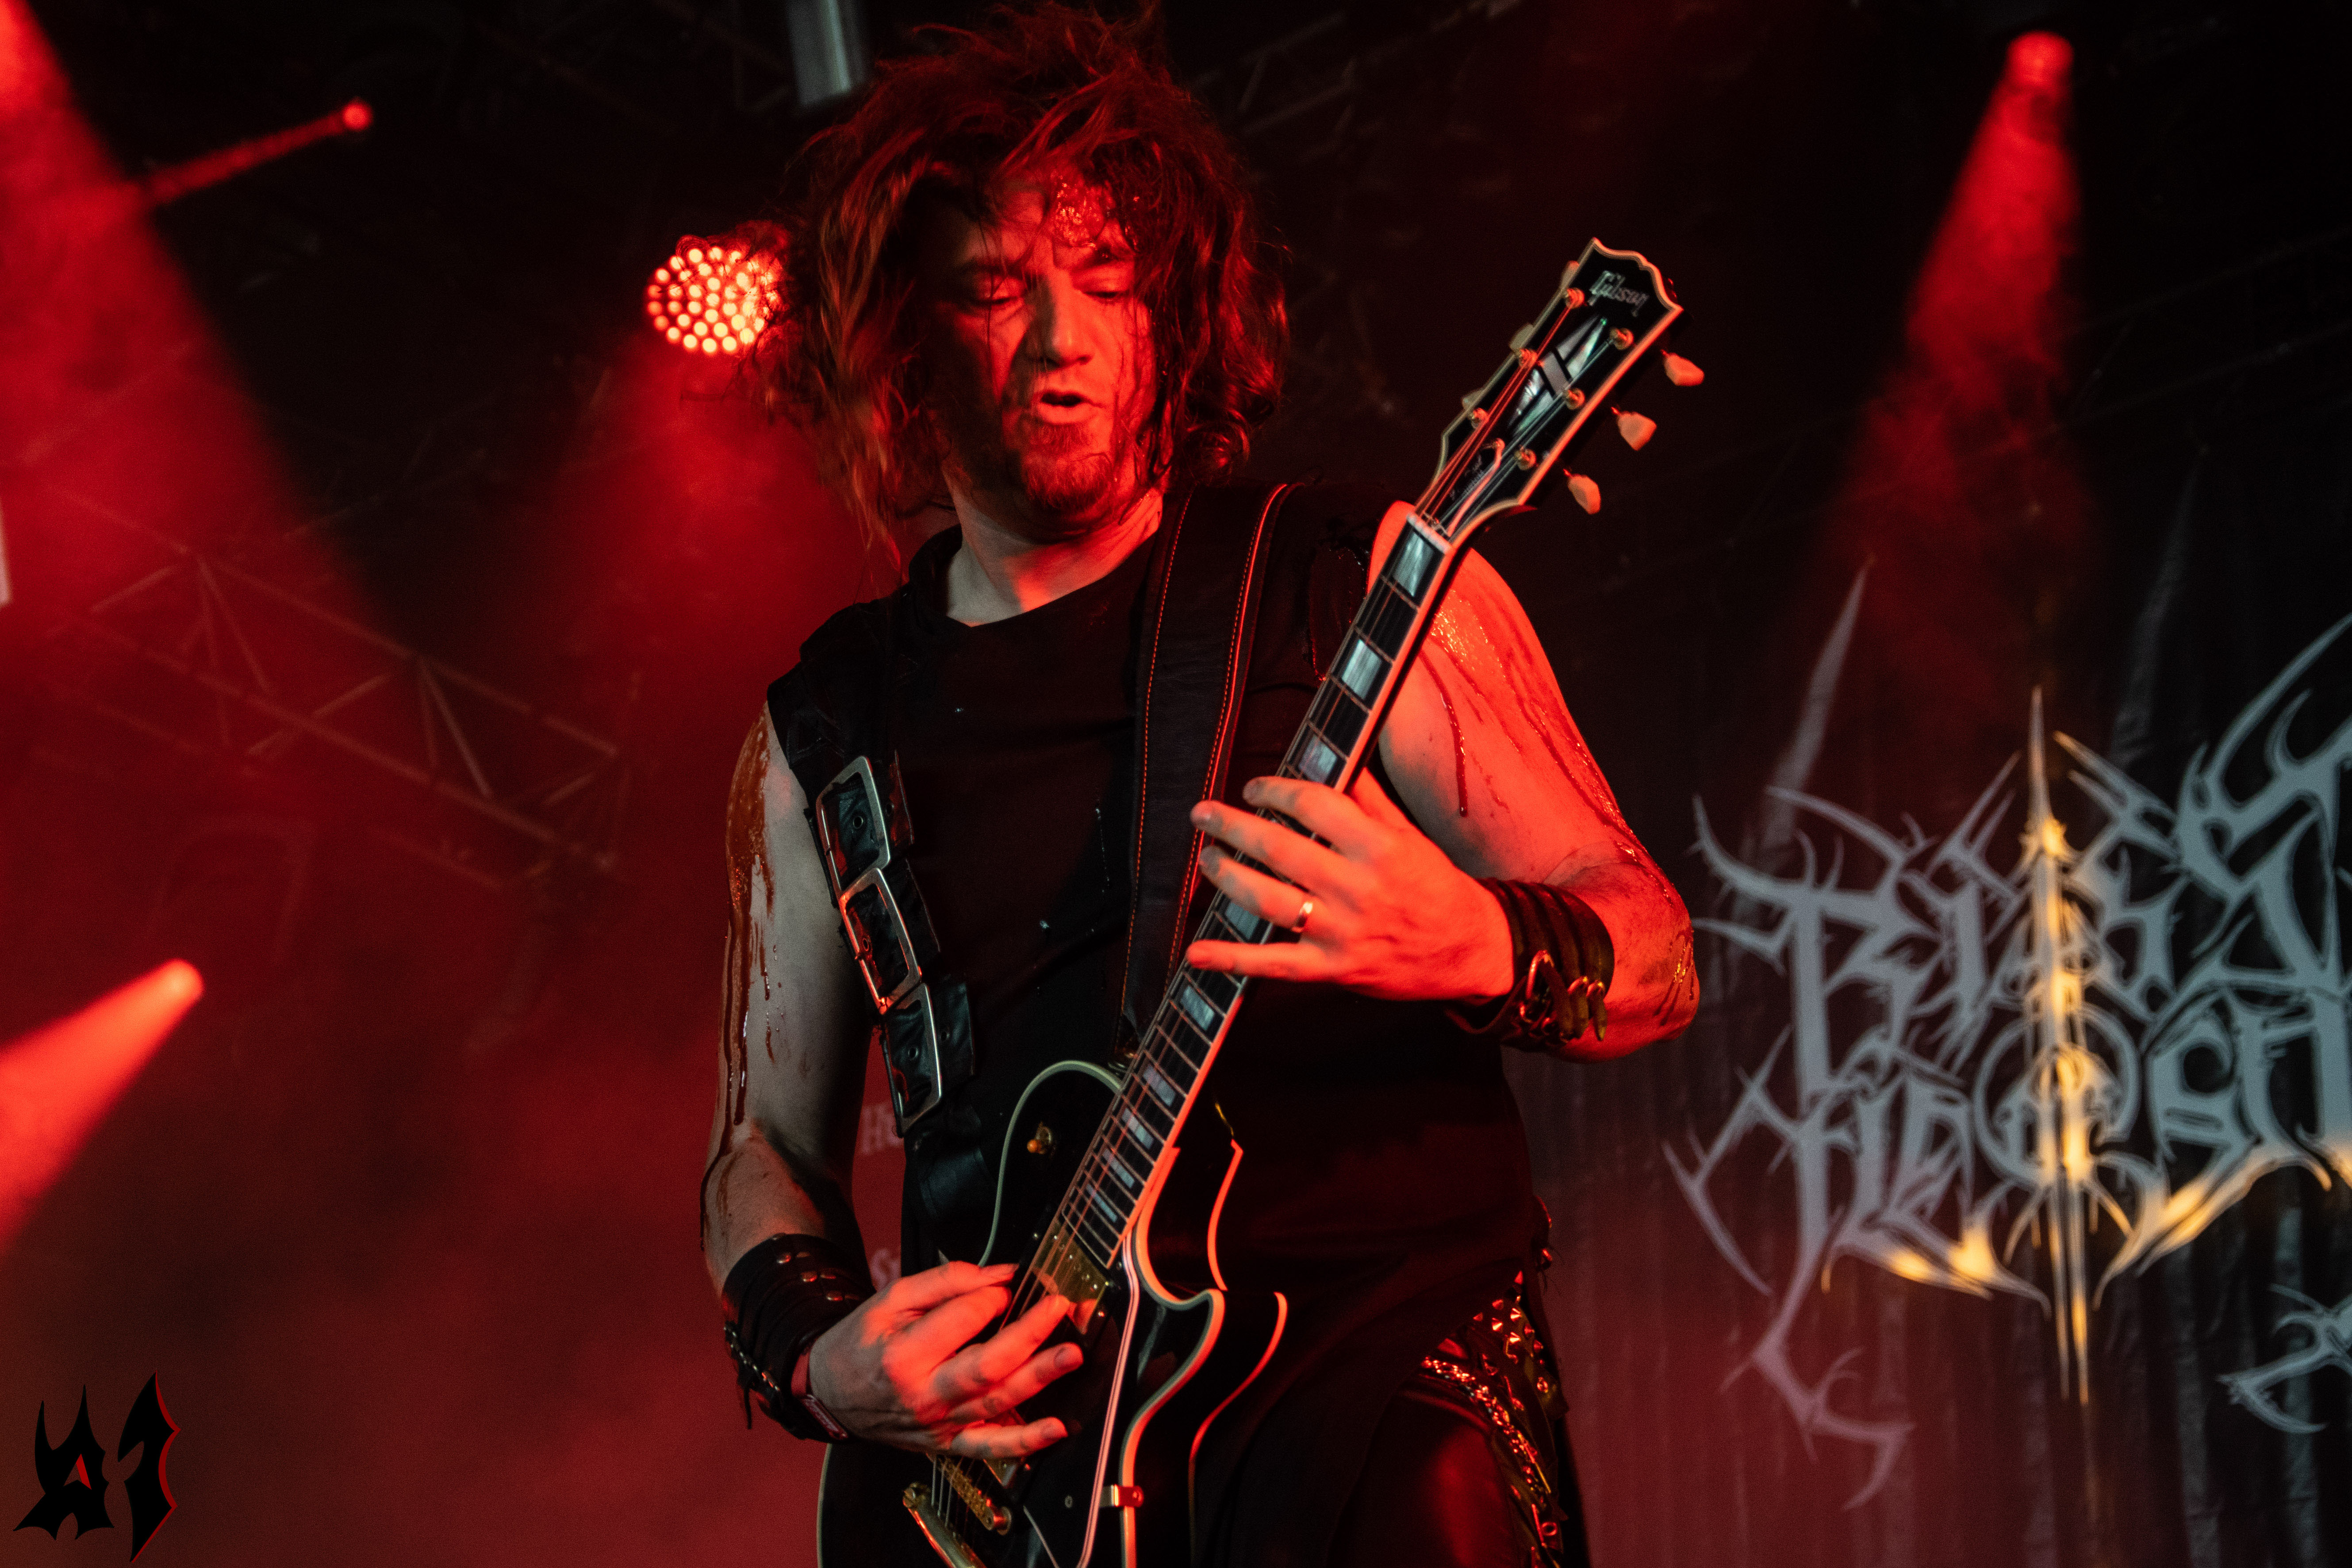 Hellfest - Bliss Of Flesh - 13